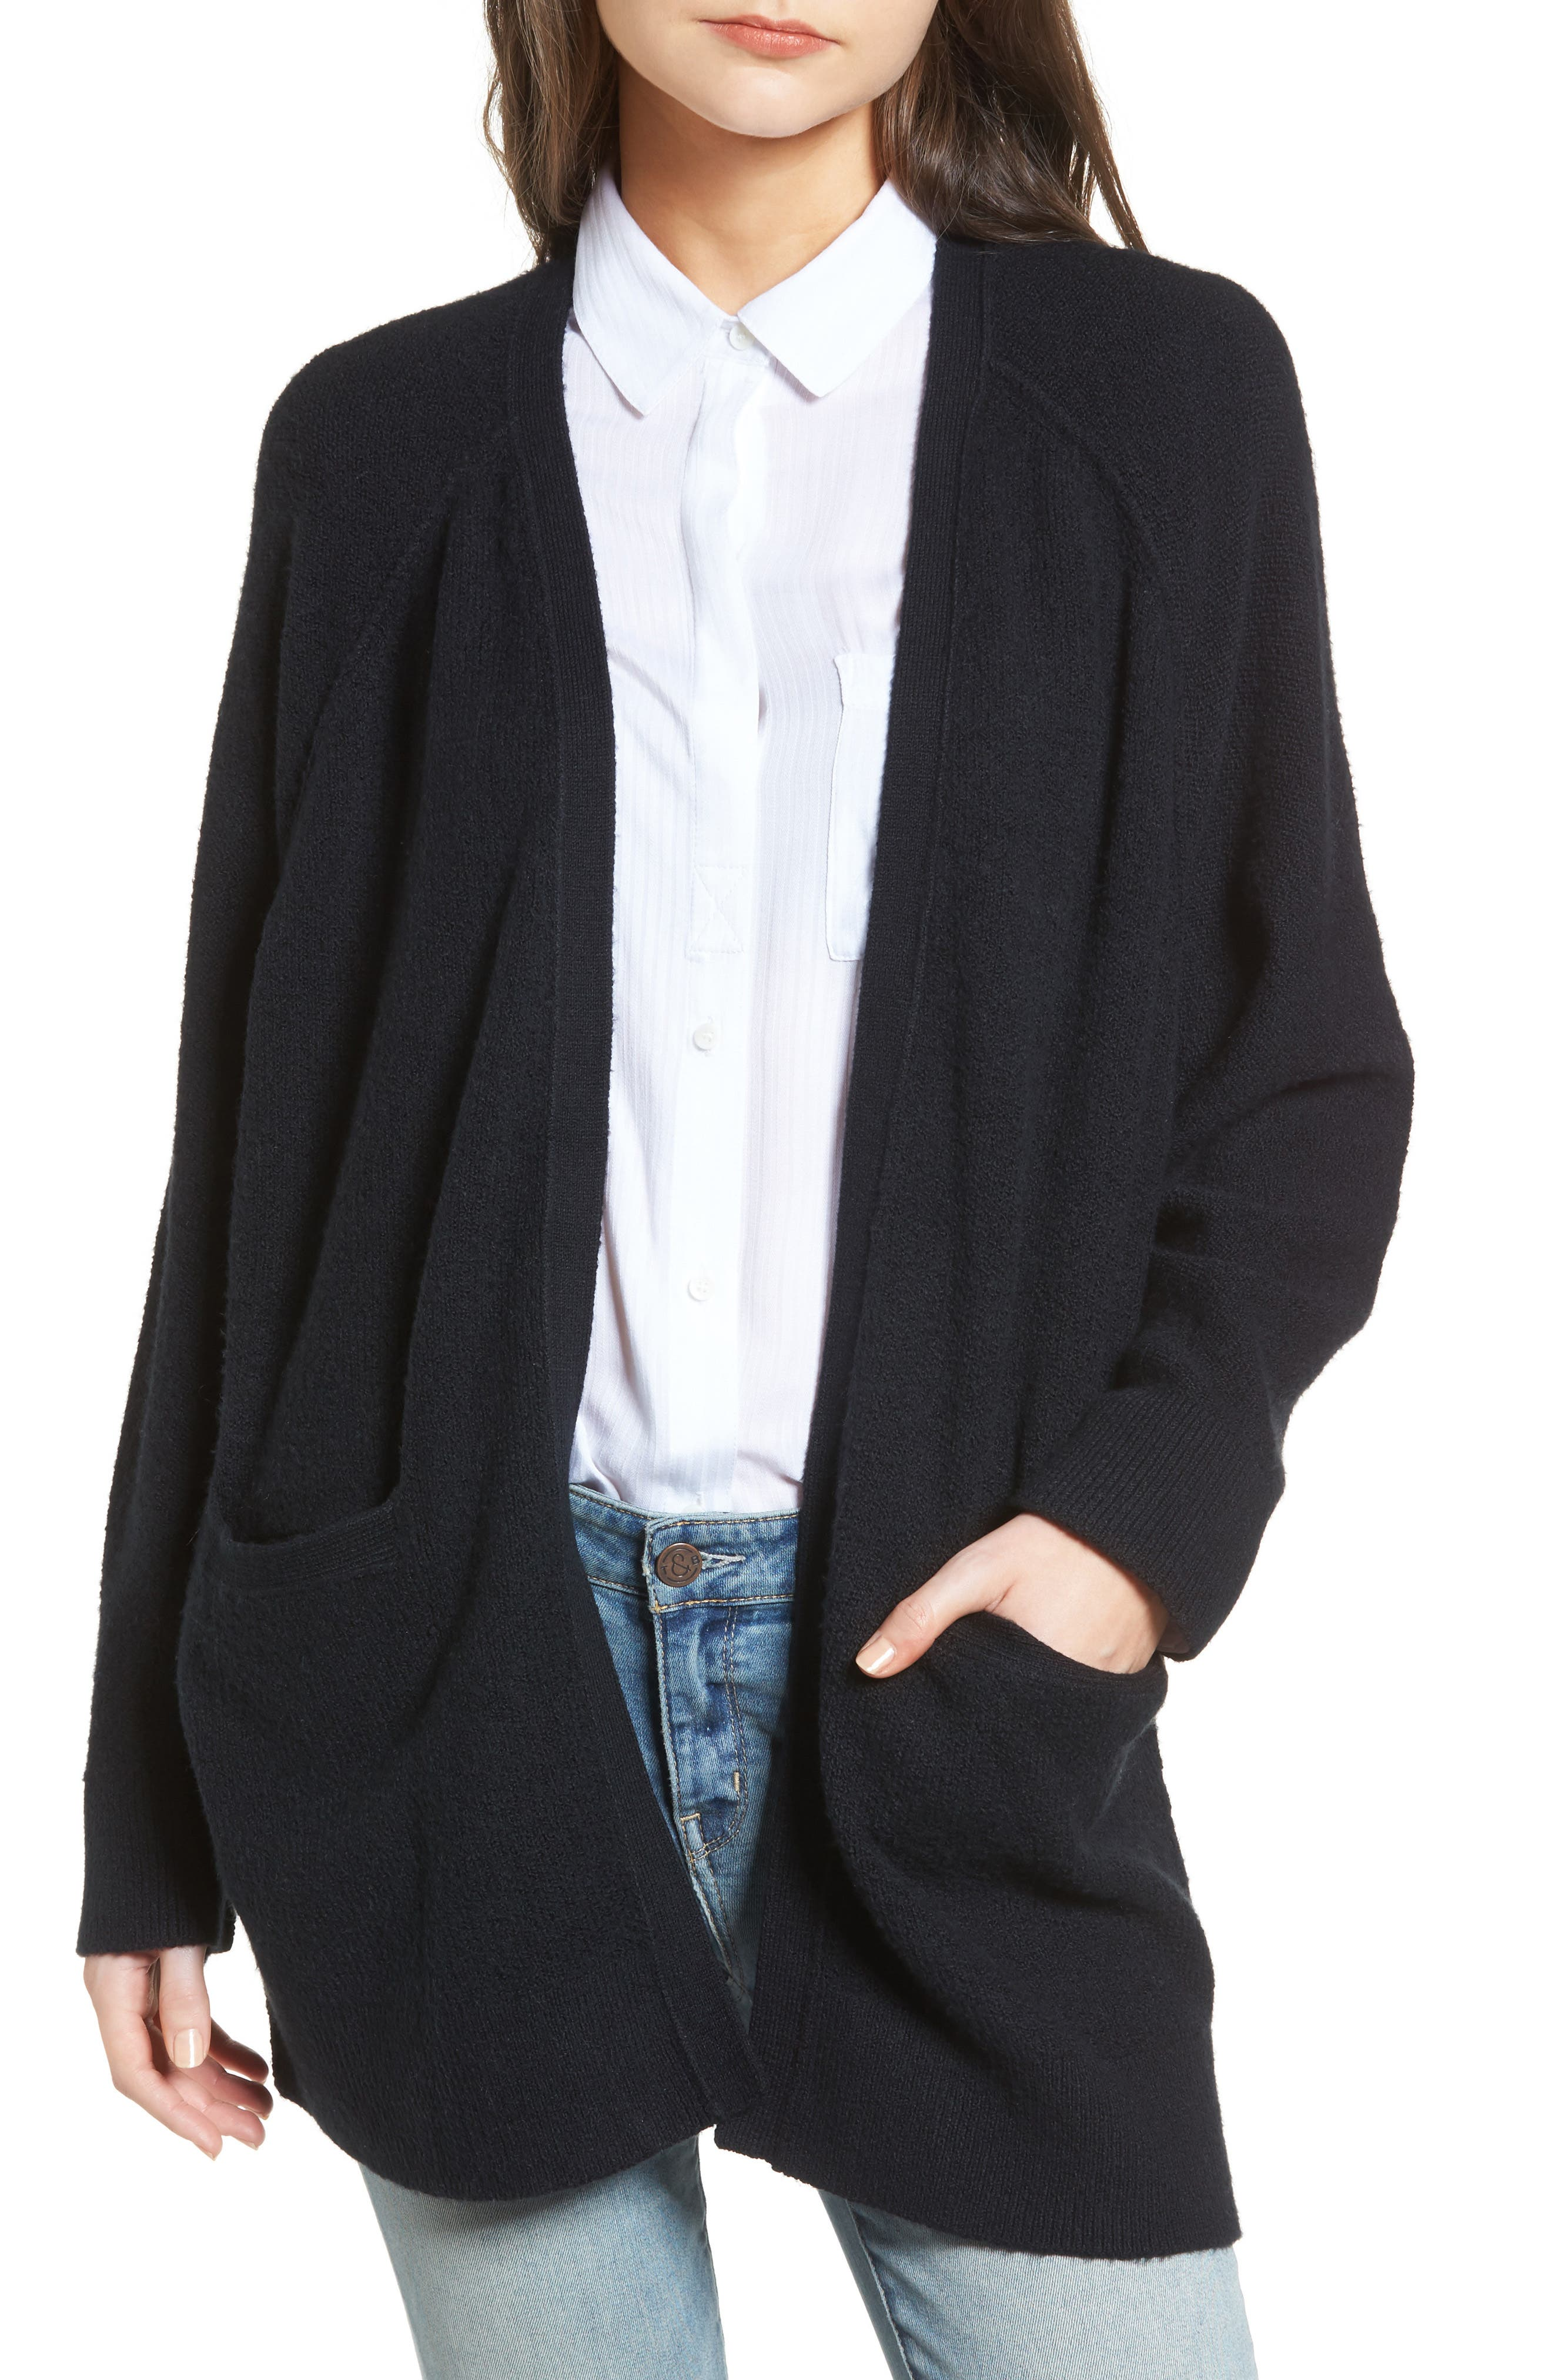 Treasure&Bond 'Throw On' Cardigan,                         Main,                         color, 001